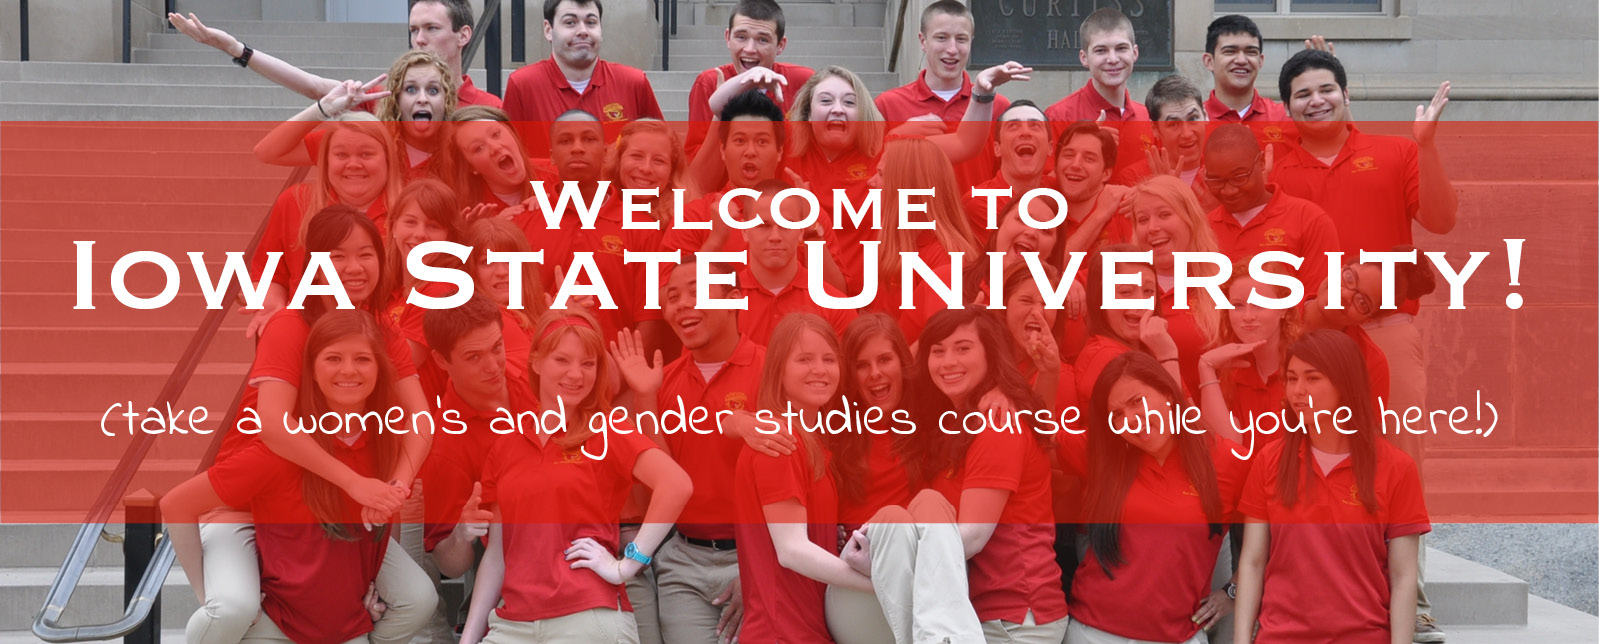 Welcome to Iowa State University! (take a women's and gender studies course while you're here!)